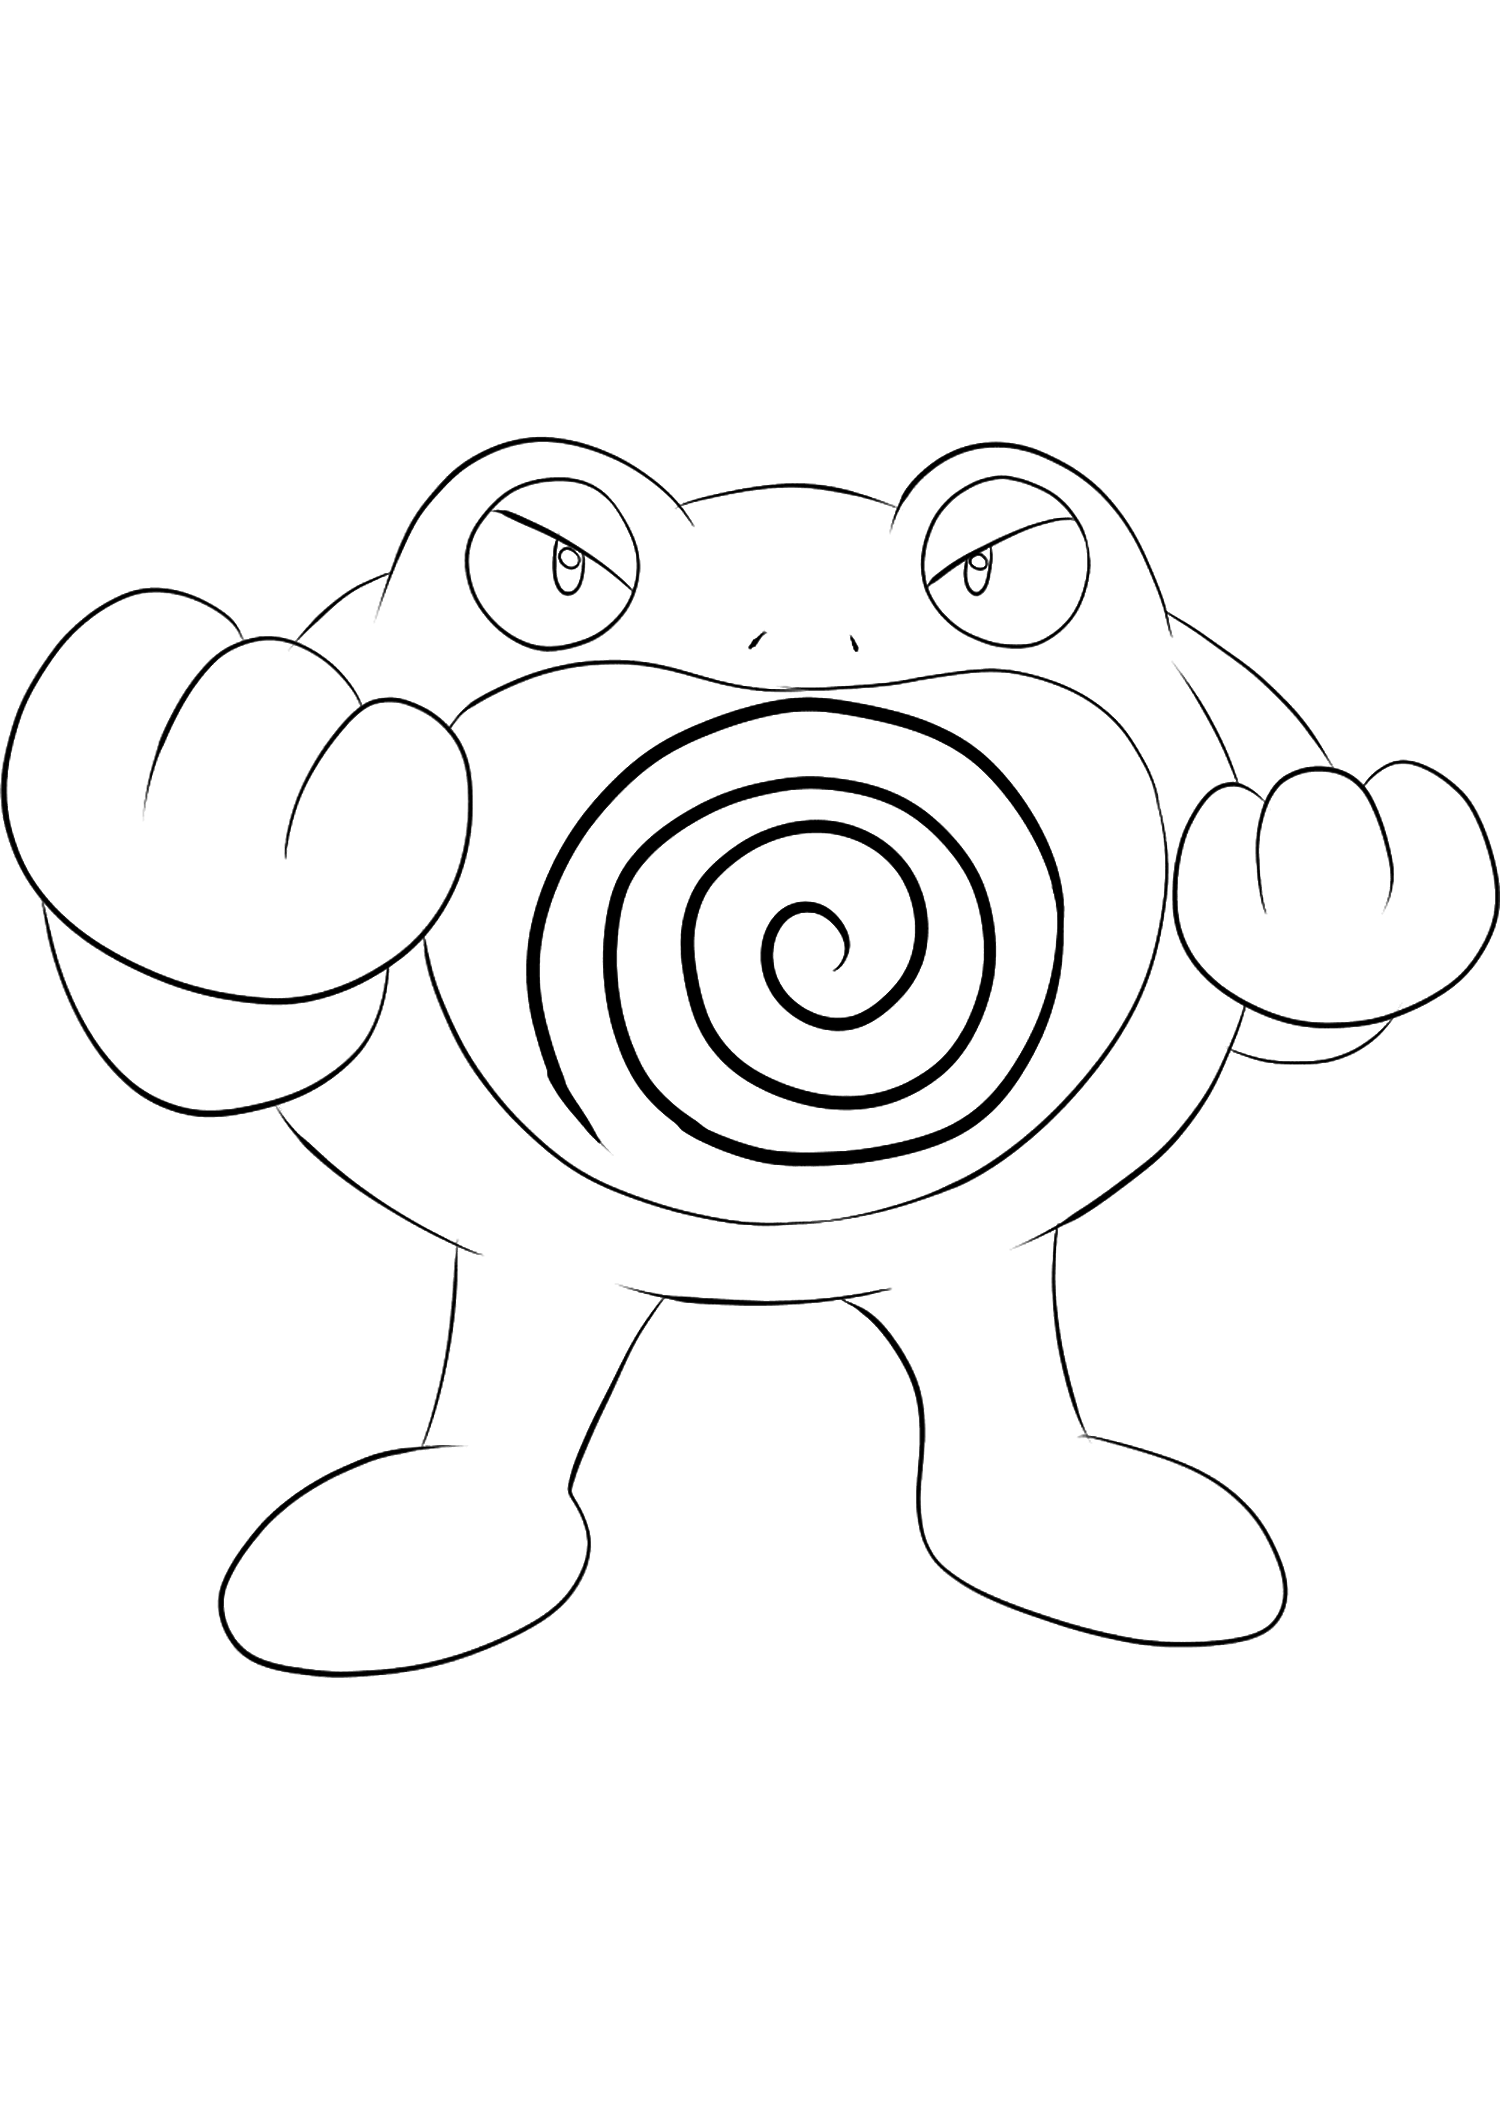 Poliwrath (No.62)Poliwrath Coloring page, Generation I Pokemon of type Water and FightingOriginal image credit: Pokemon linearts by Lilly Gerbil on Deviantart.Permission:  All rights reserved © Pokemon company and Ken Sugimori.